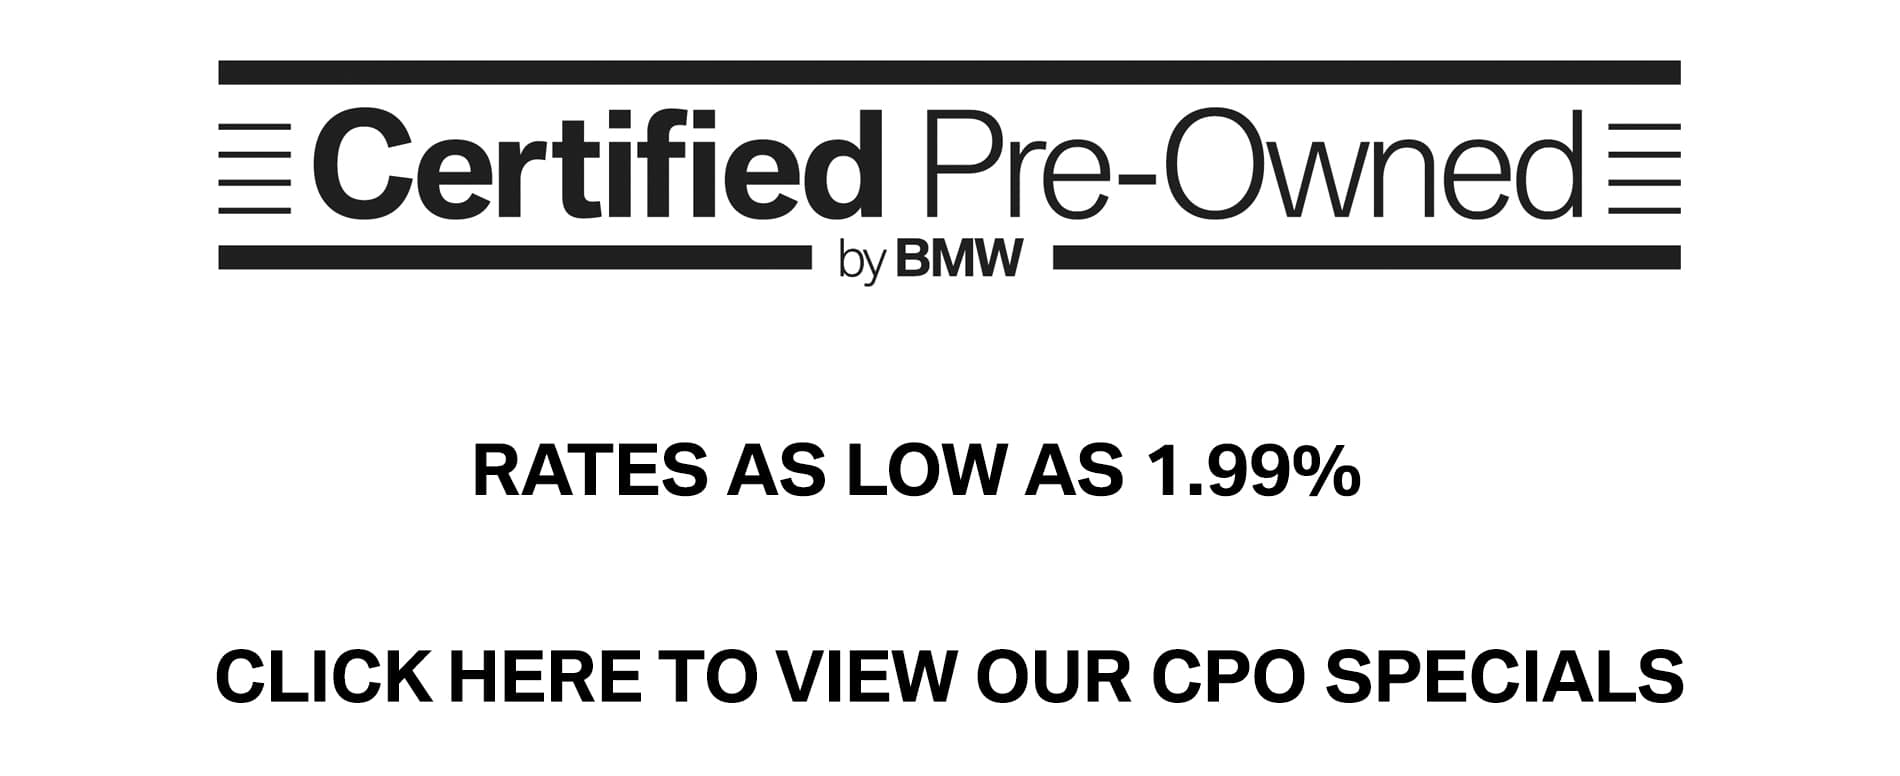 Certified Pre Owned BMW